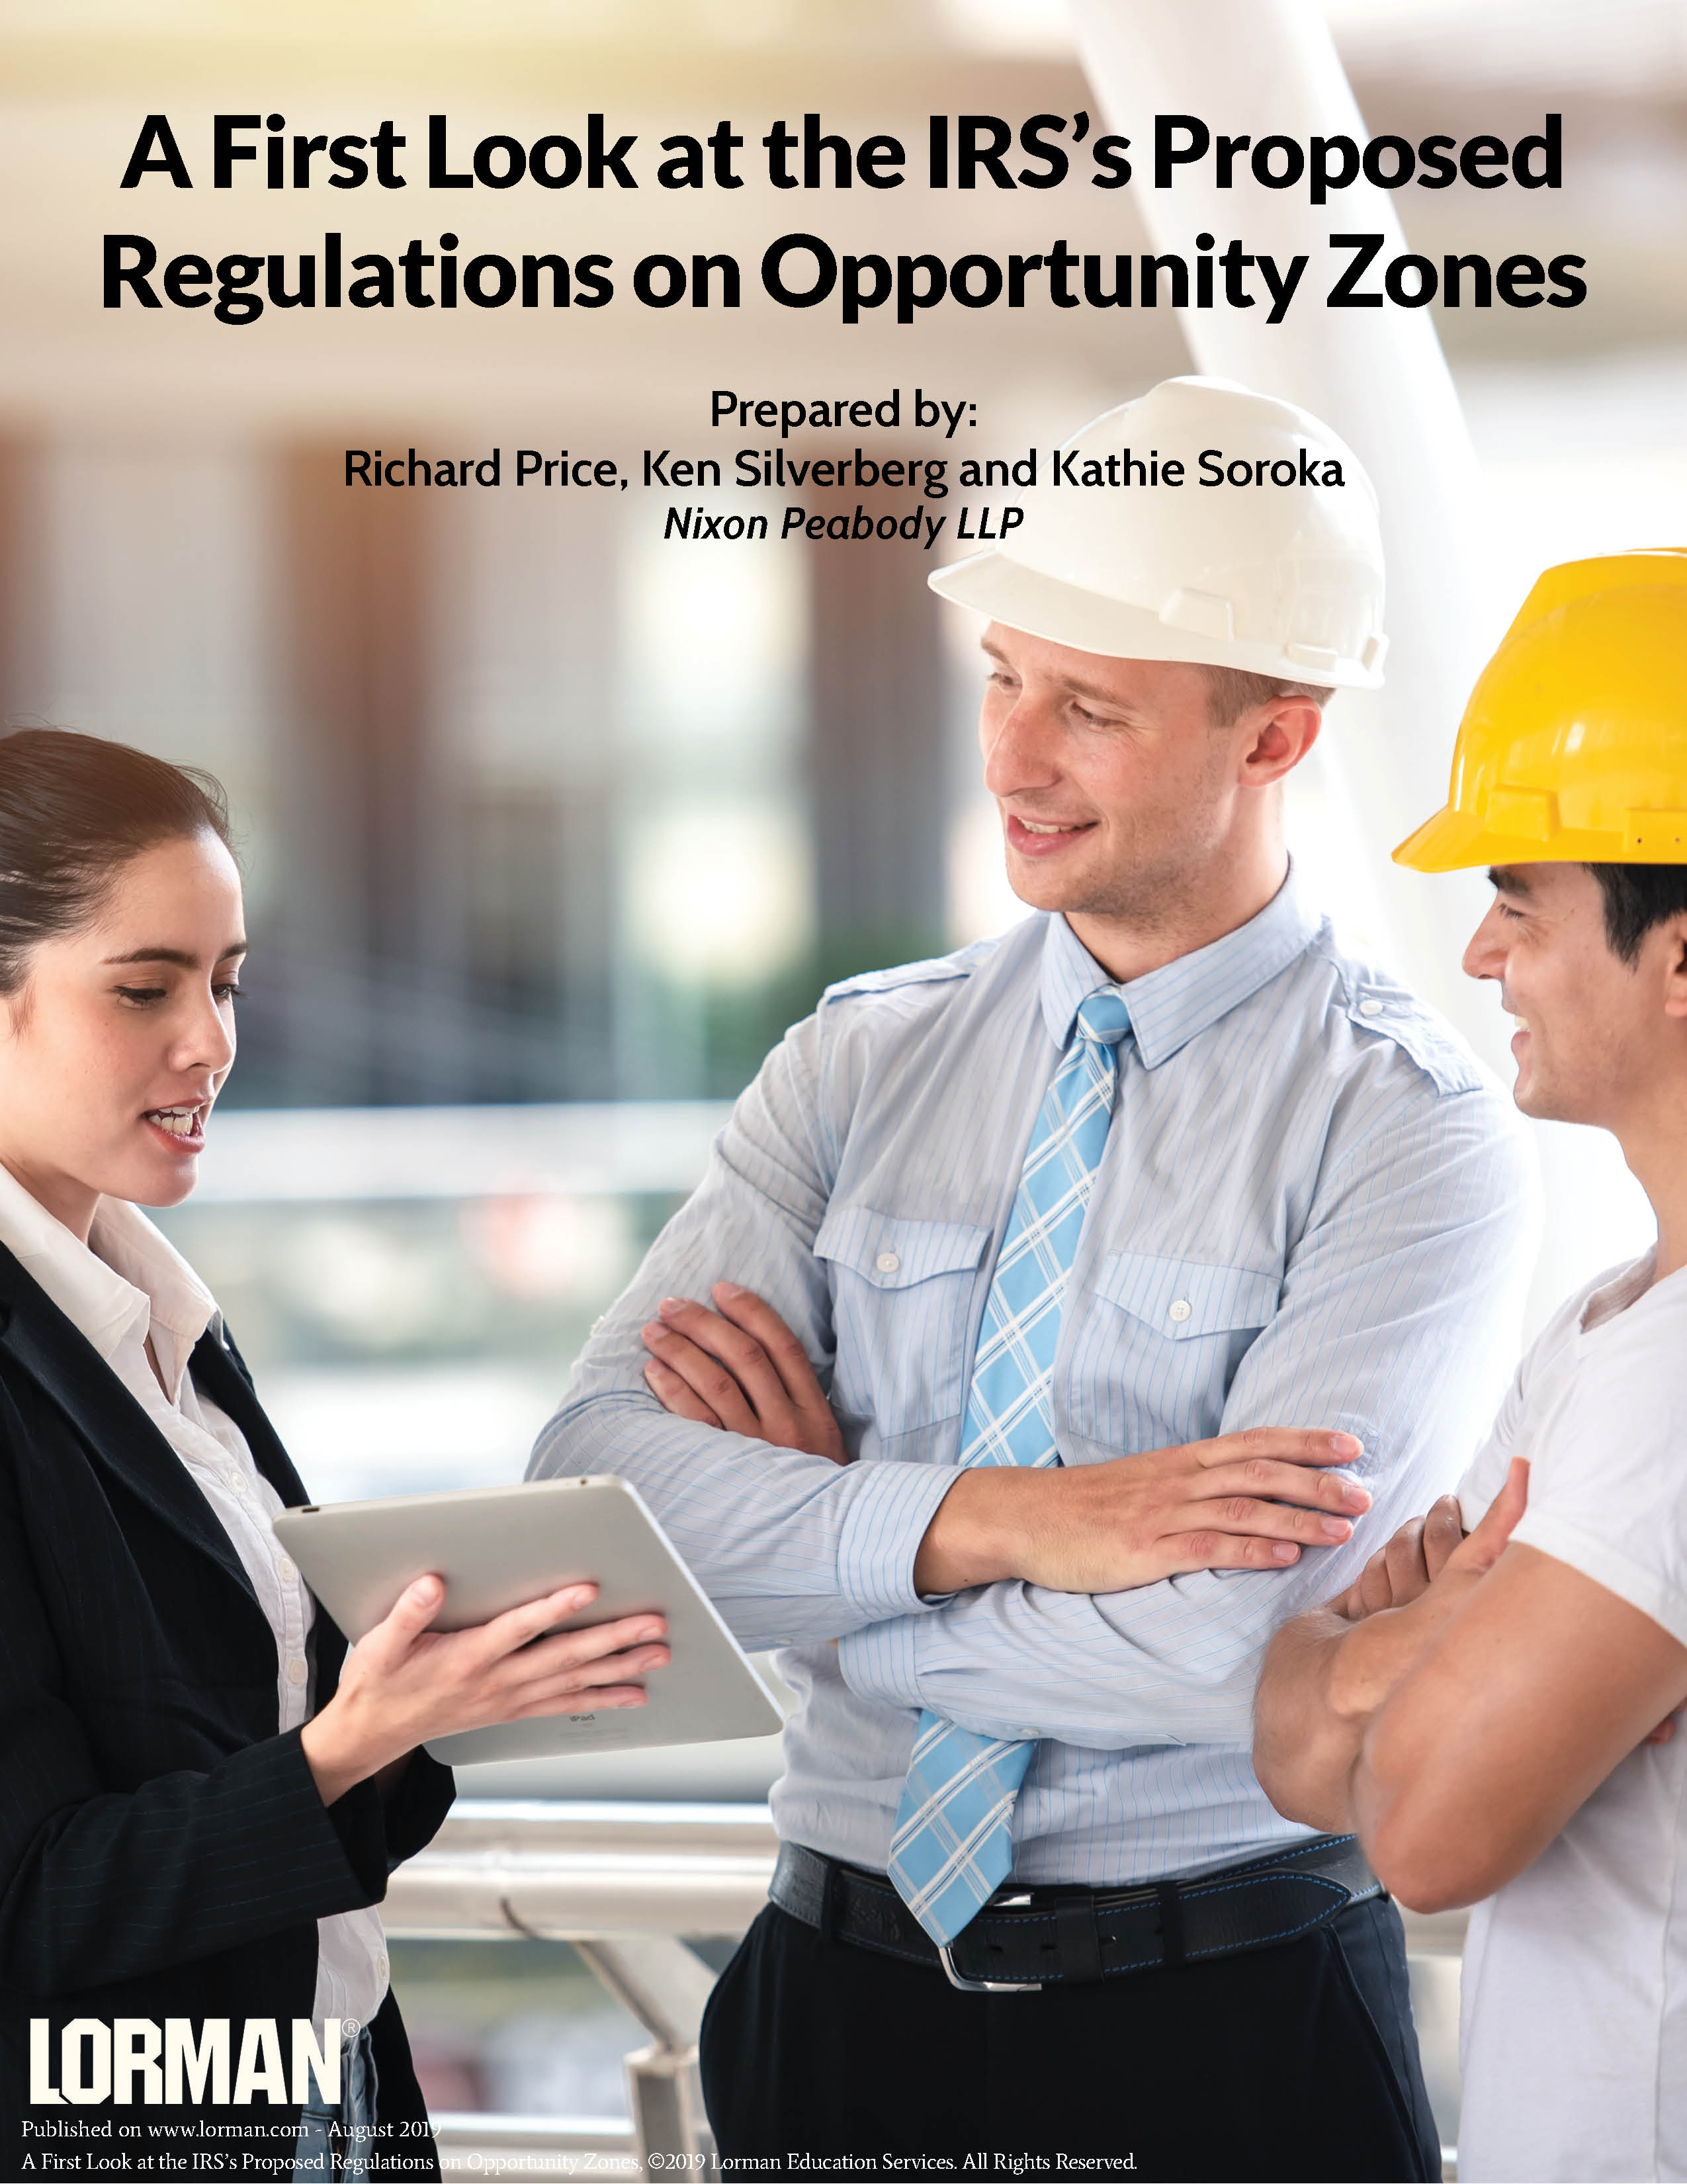 A First Look at the IRS's Proposed Regulations on Opportunity Zones